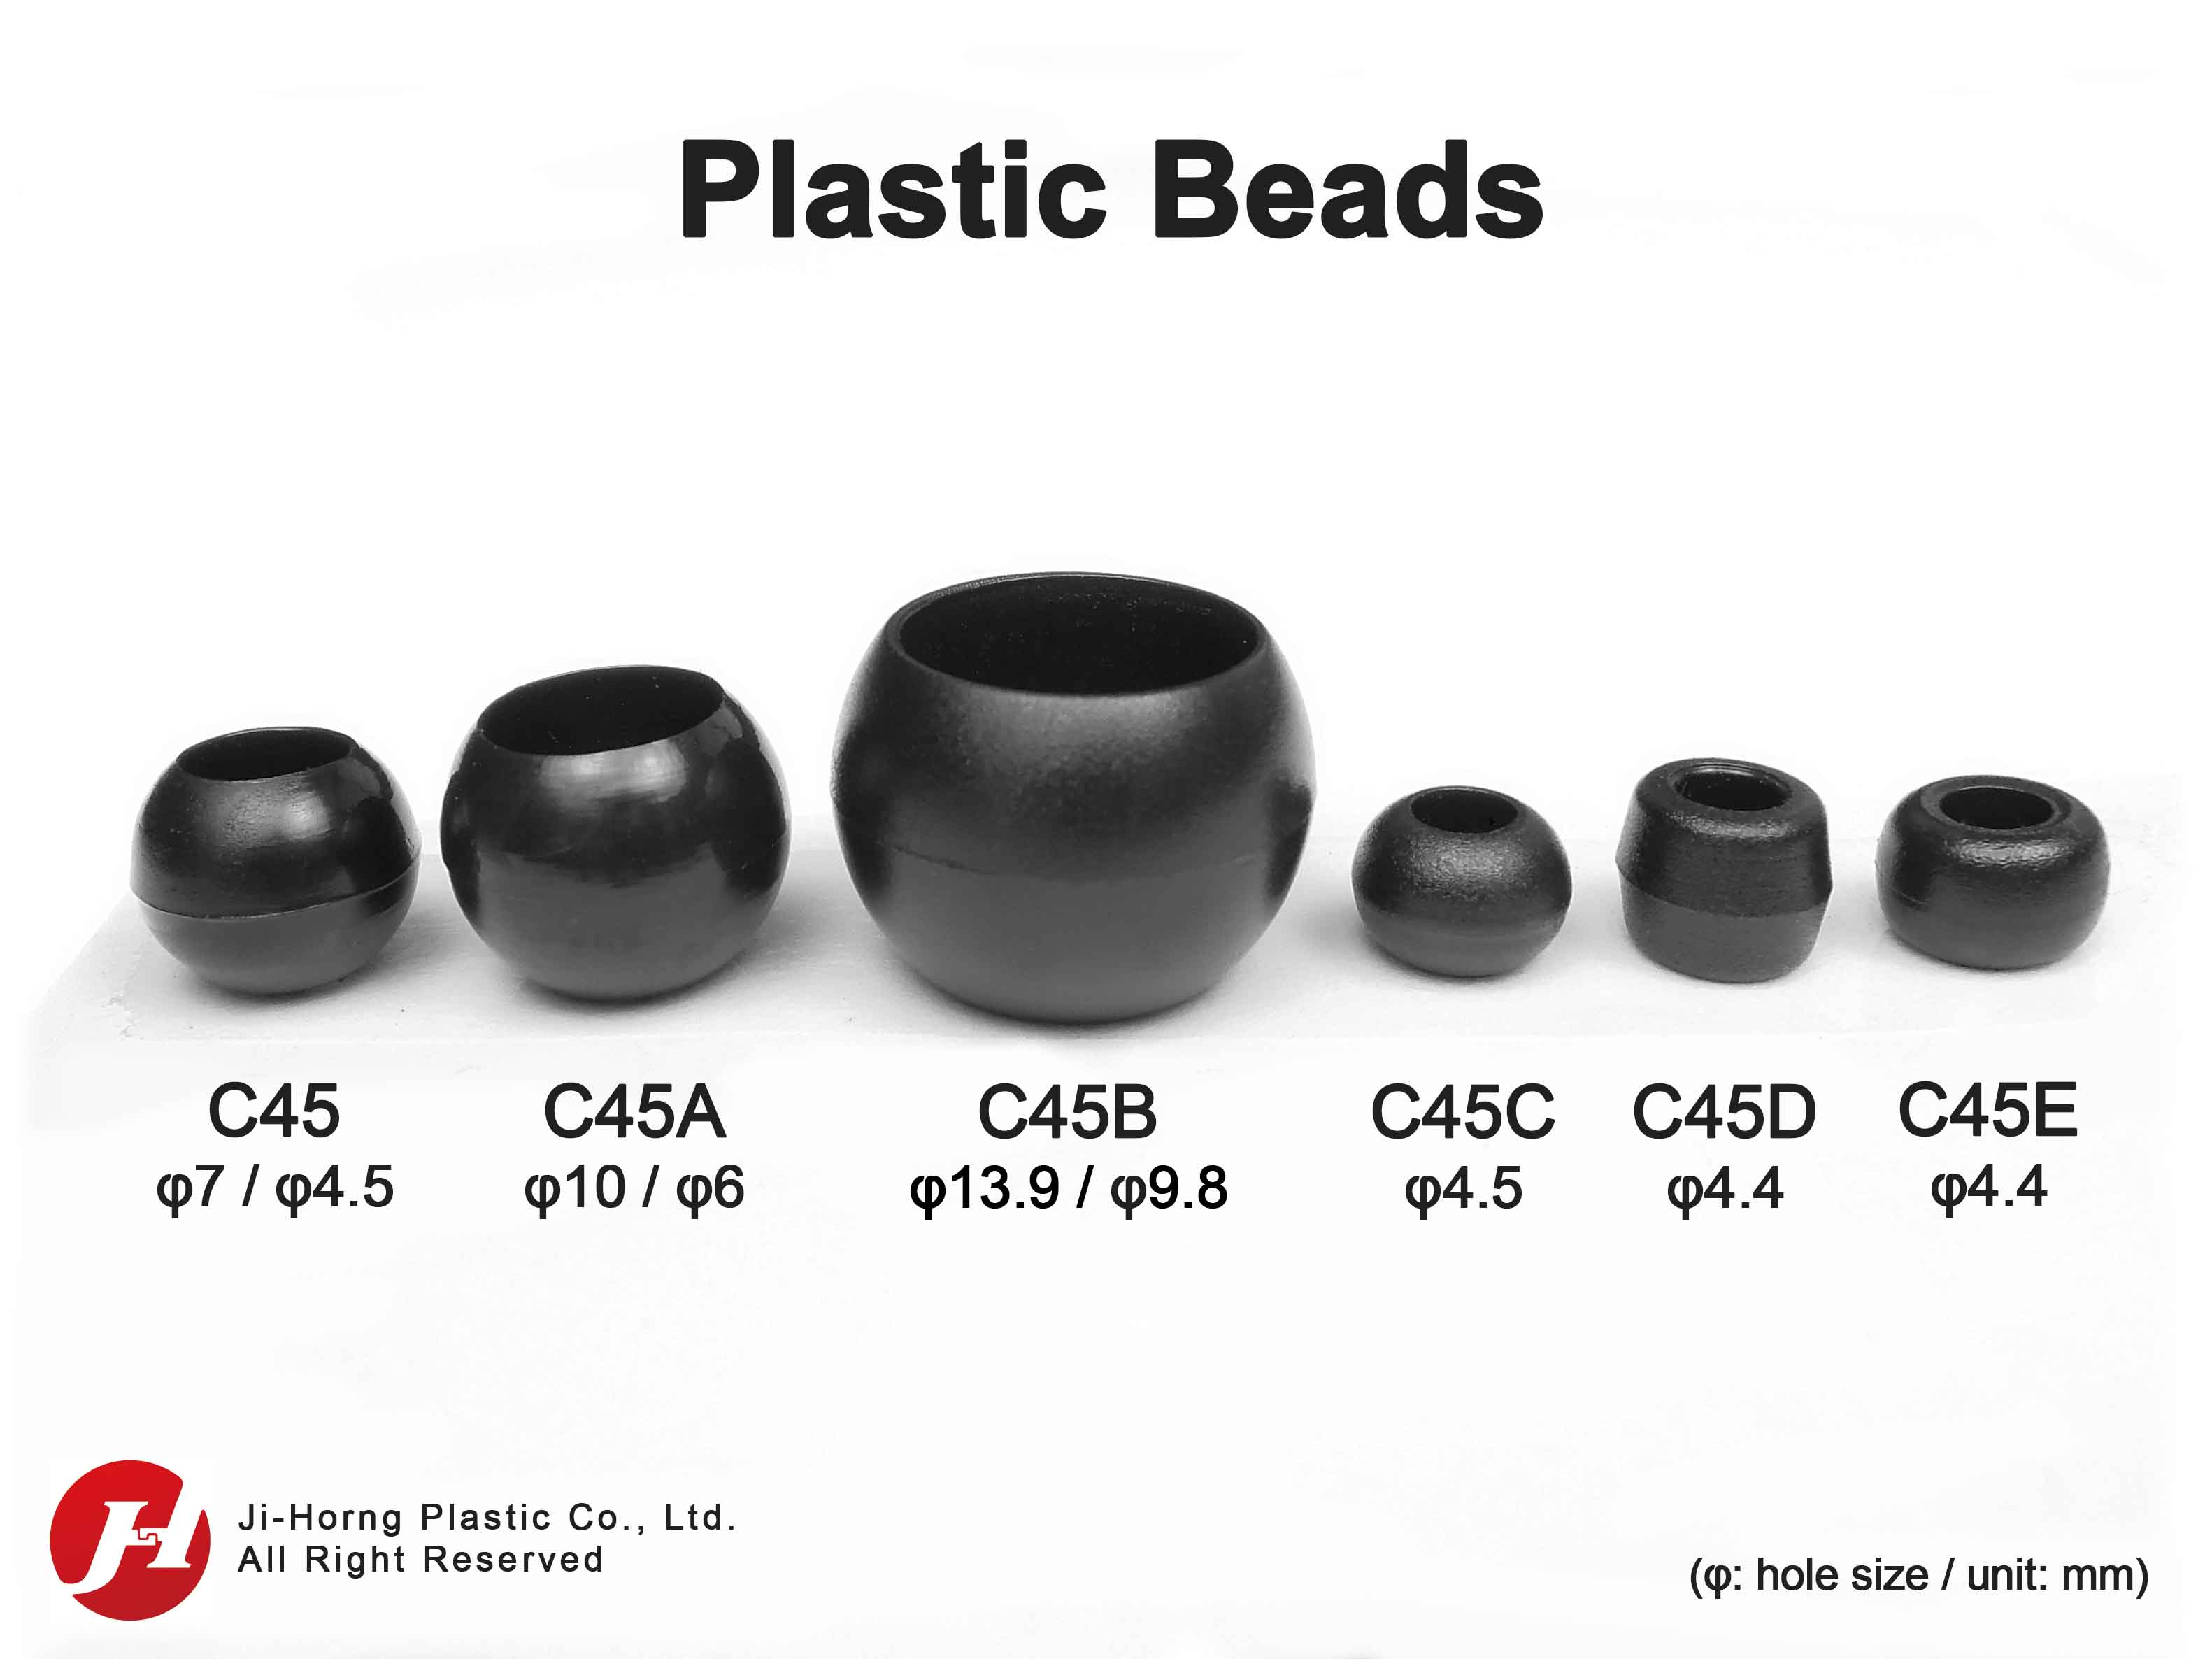 ji-horng-plastic-ball-cord-end-beads-C45-series